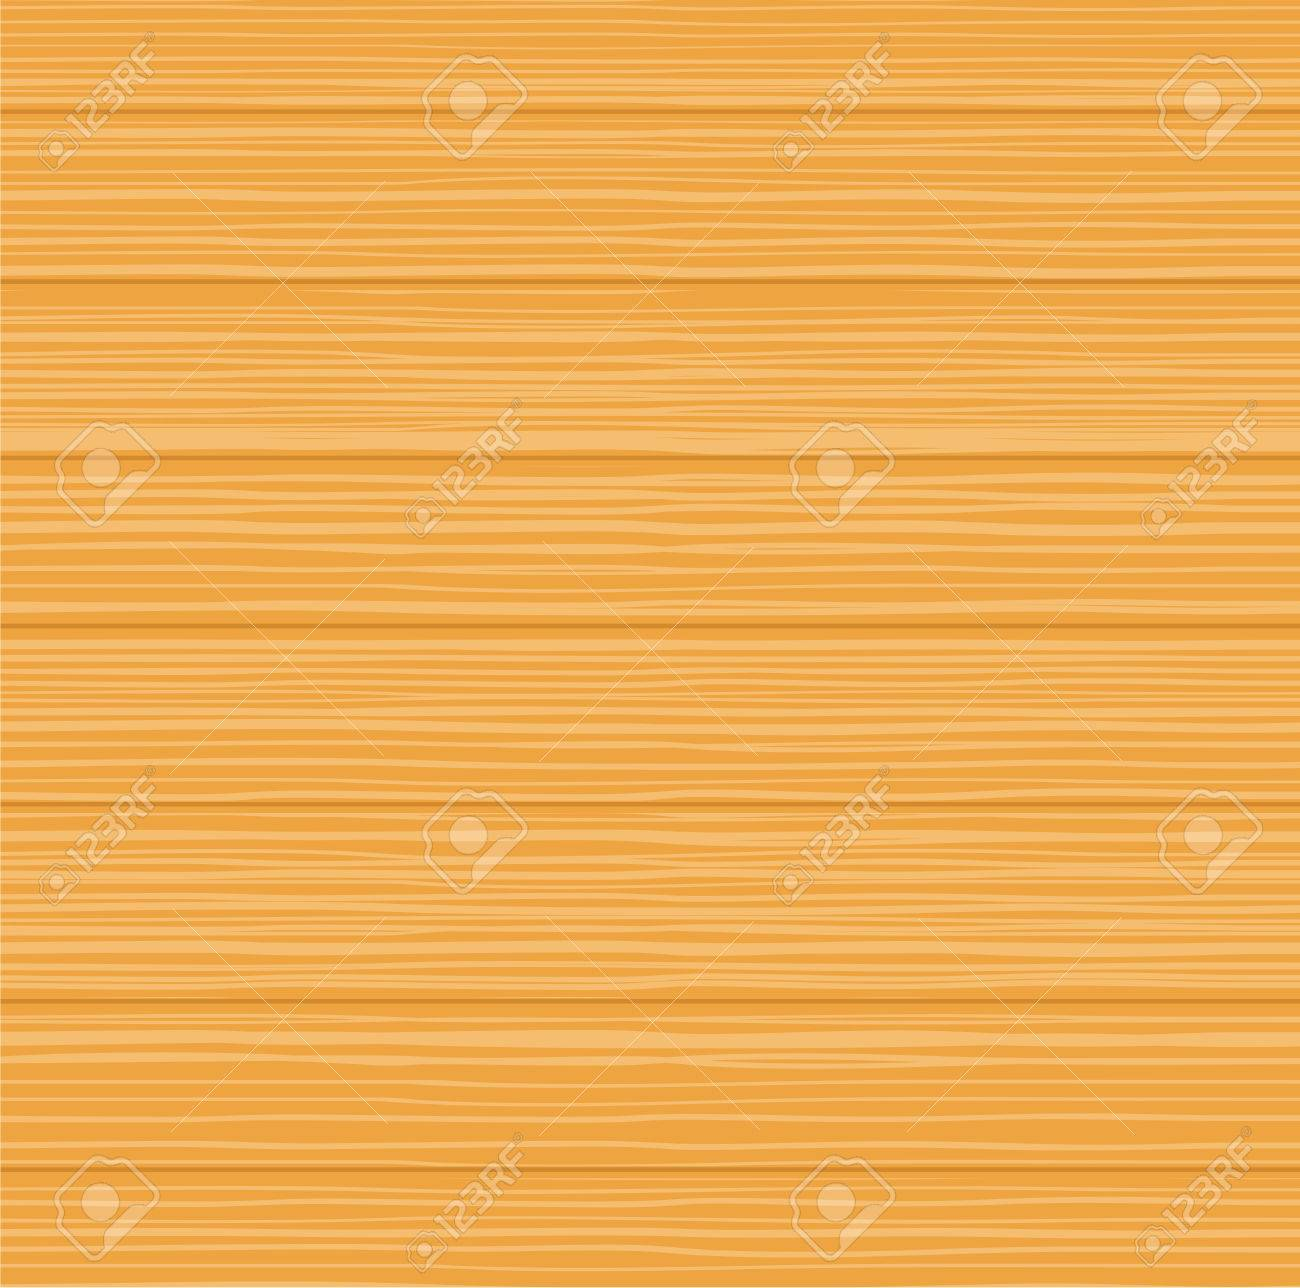 Light Wood Background Pattern Texture Illustration. Vector Wood Texture For  Your Design. You Can